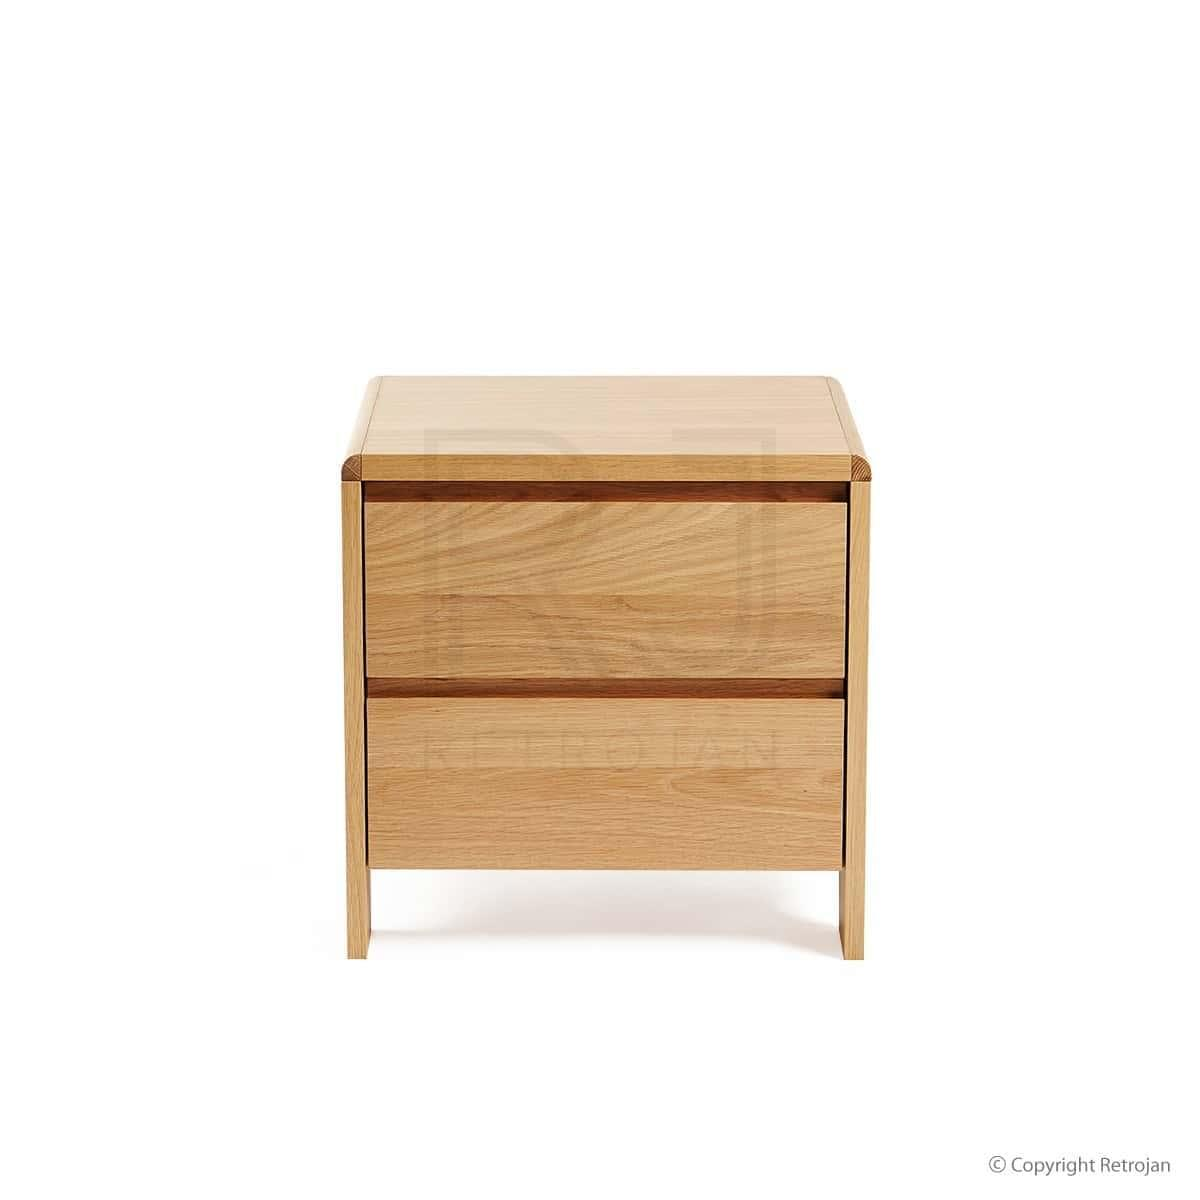 St George Designer 2 Drawer Bedside Table - Oak